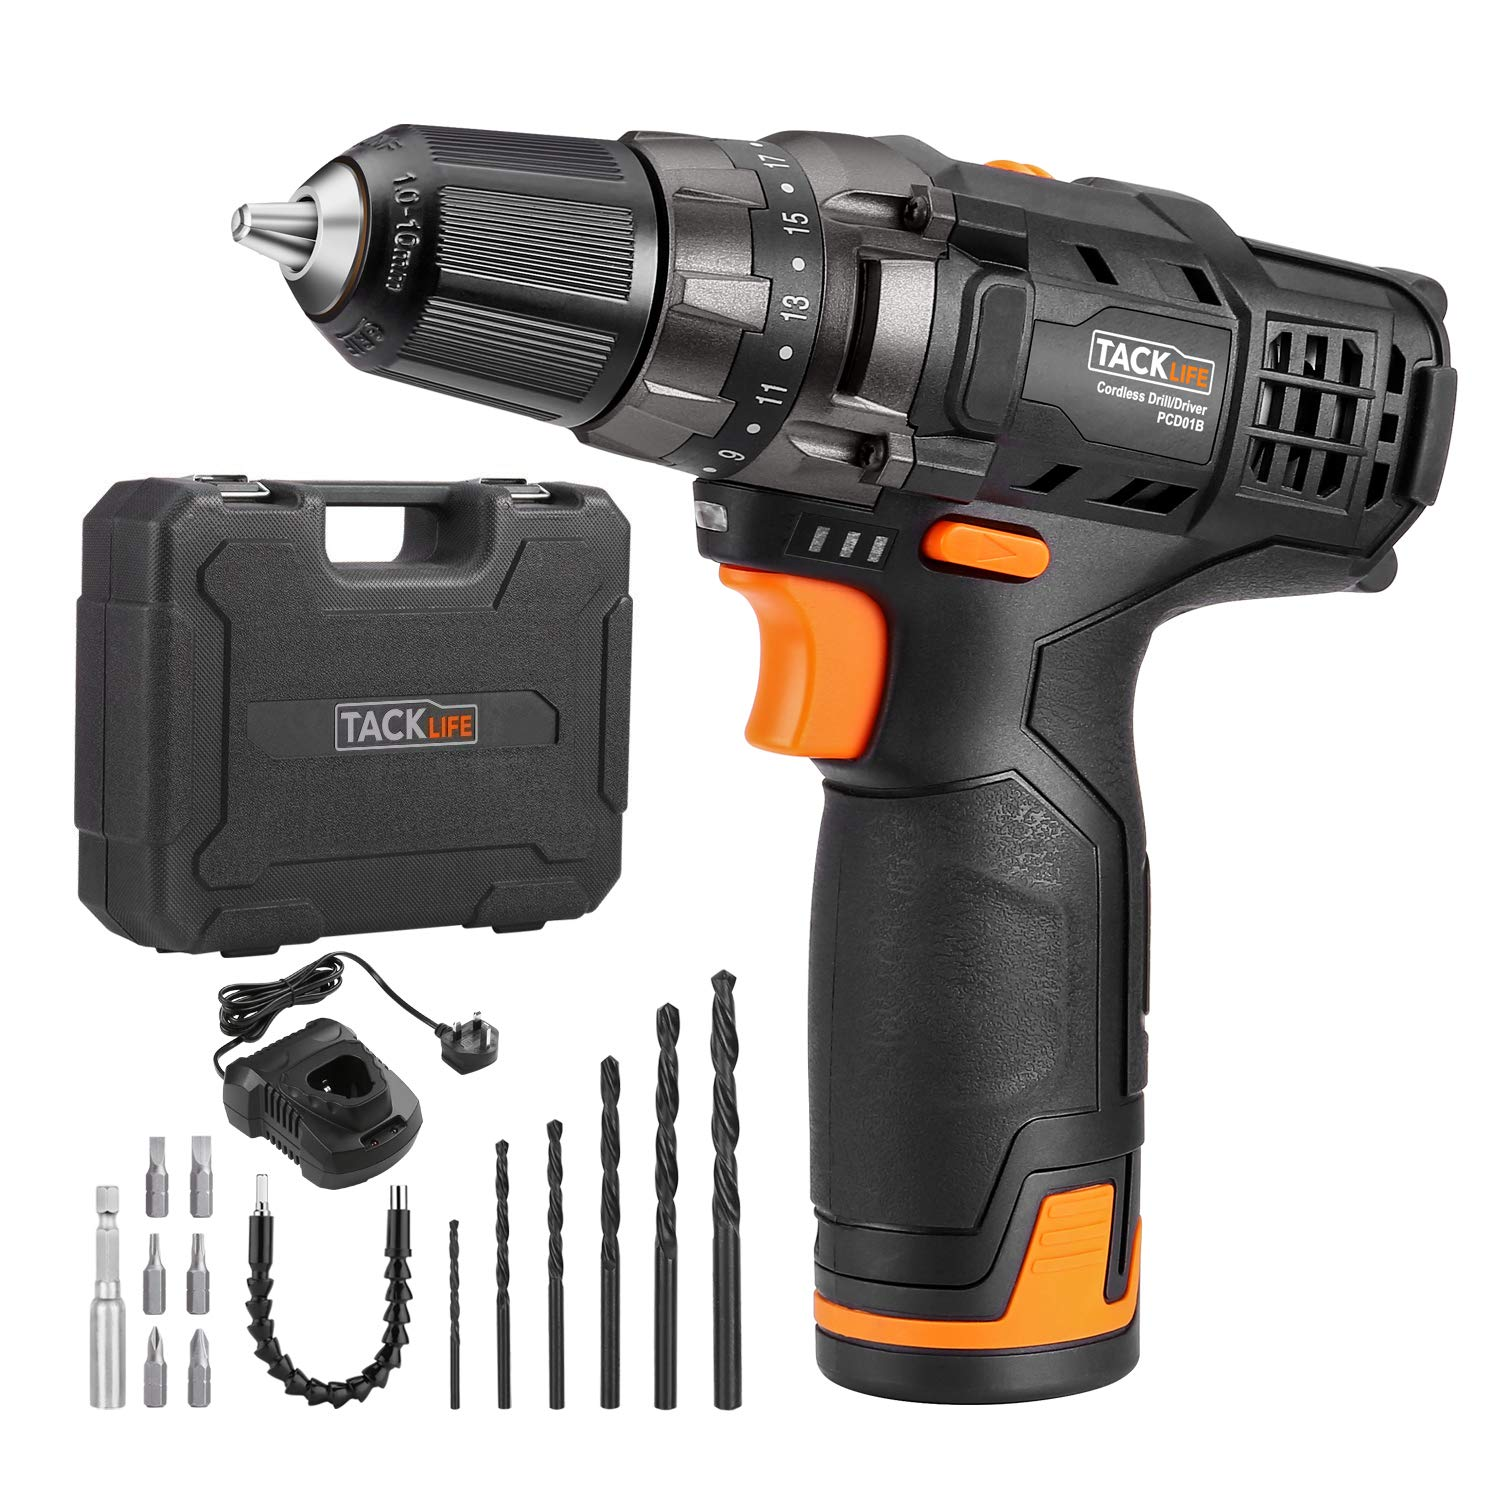 Tacklife Lithium-ion Battery Pack, PPK01B 12V 2000mAh Lithium Ion Cordless Drill Battery and 100-240V Wide Voltage Charger PPK01B-UK